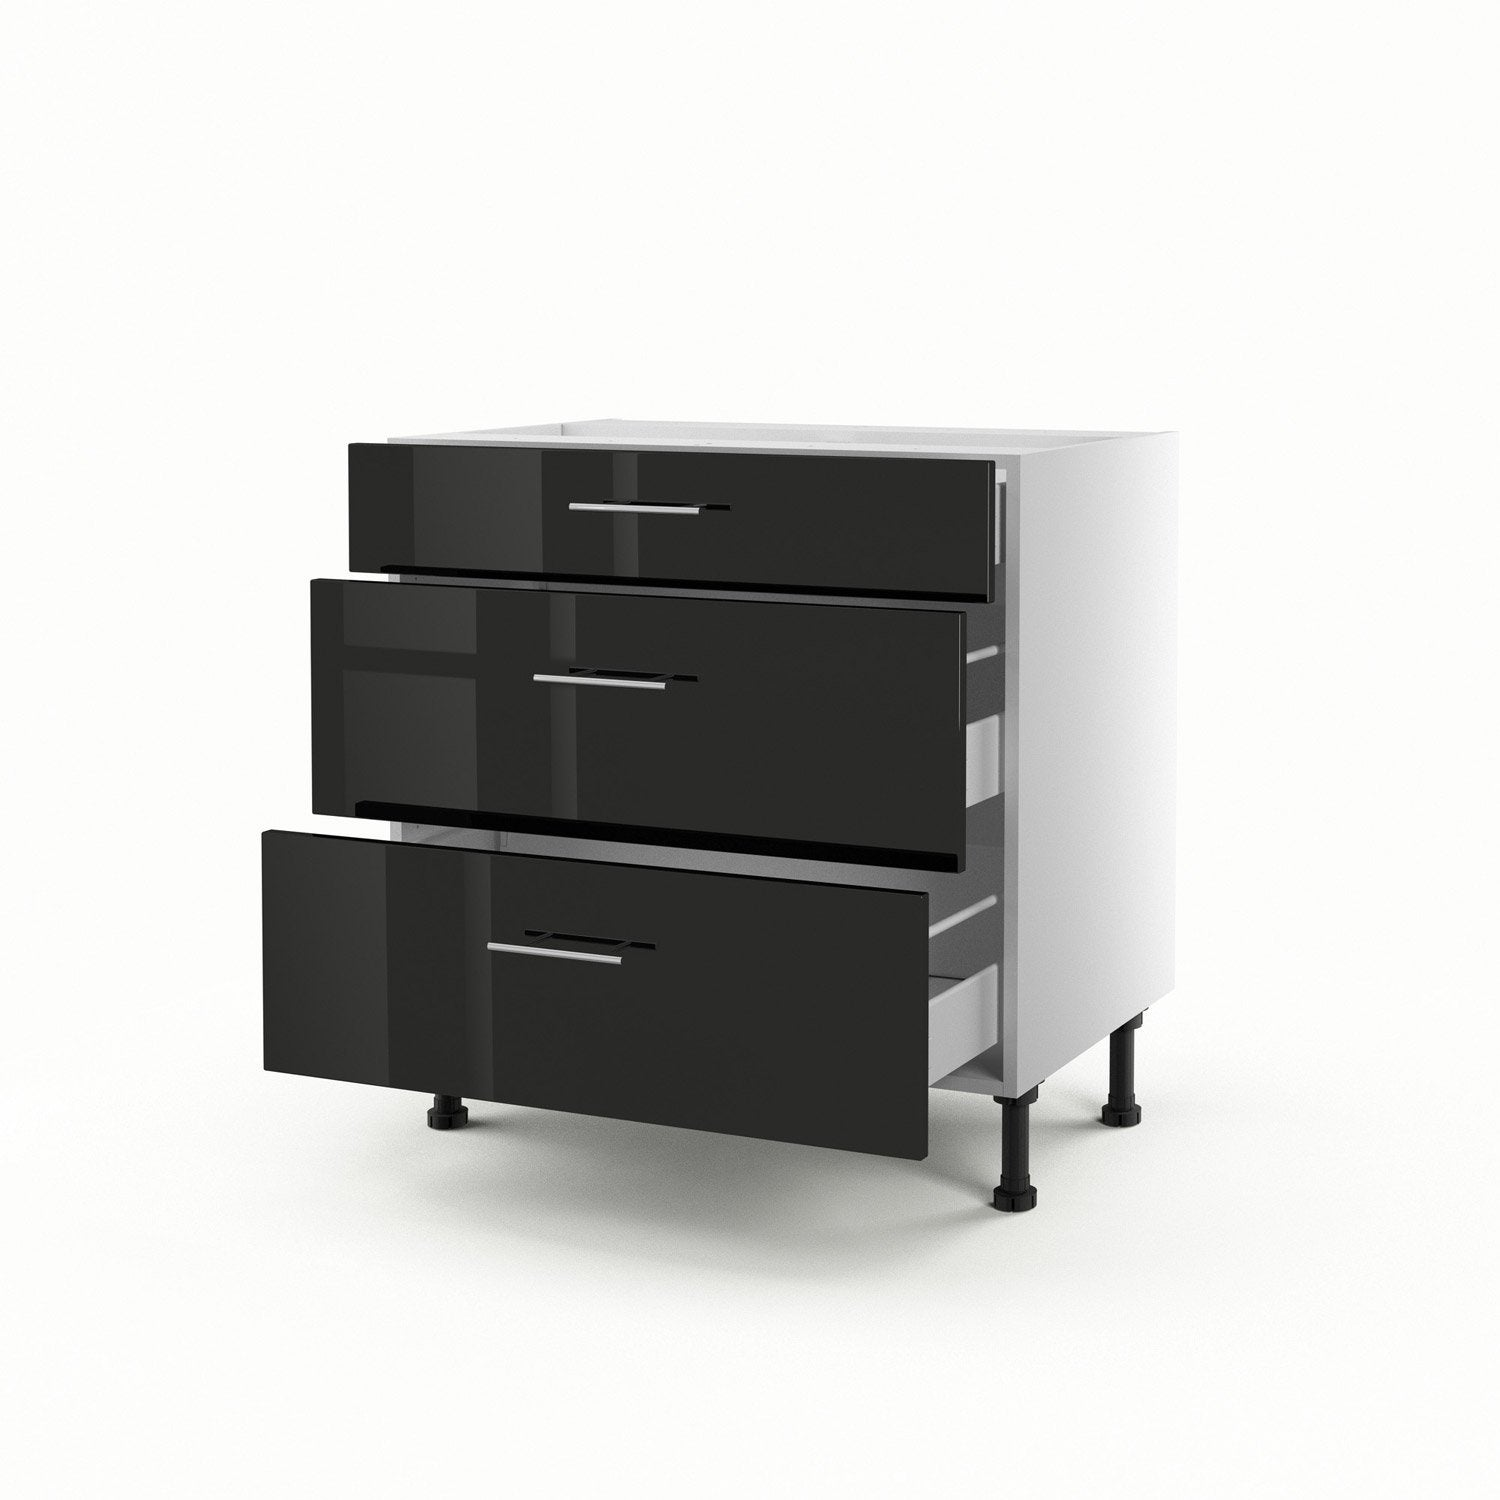 meuble de cuisine bas noir 3 tiroirs rio x x cm leroy merlin. Black Bedroom Furniture Sets. Home Design Ideas